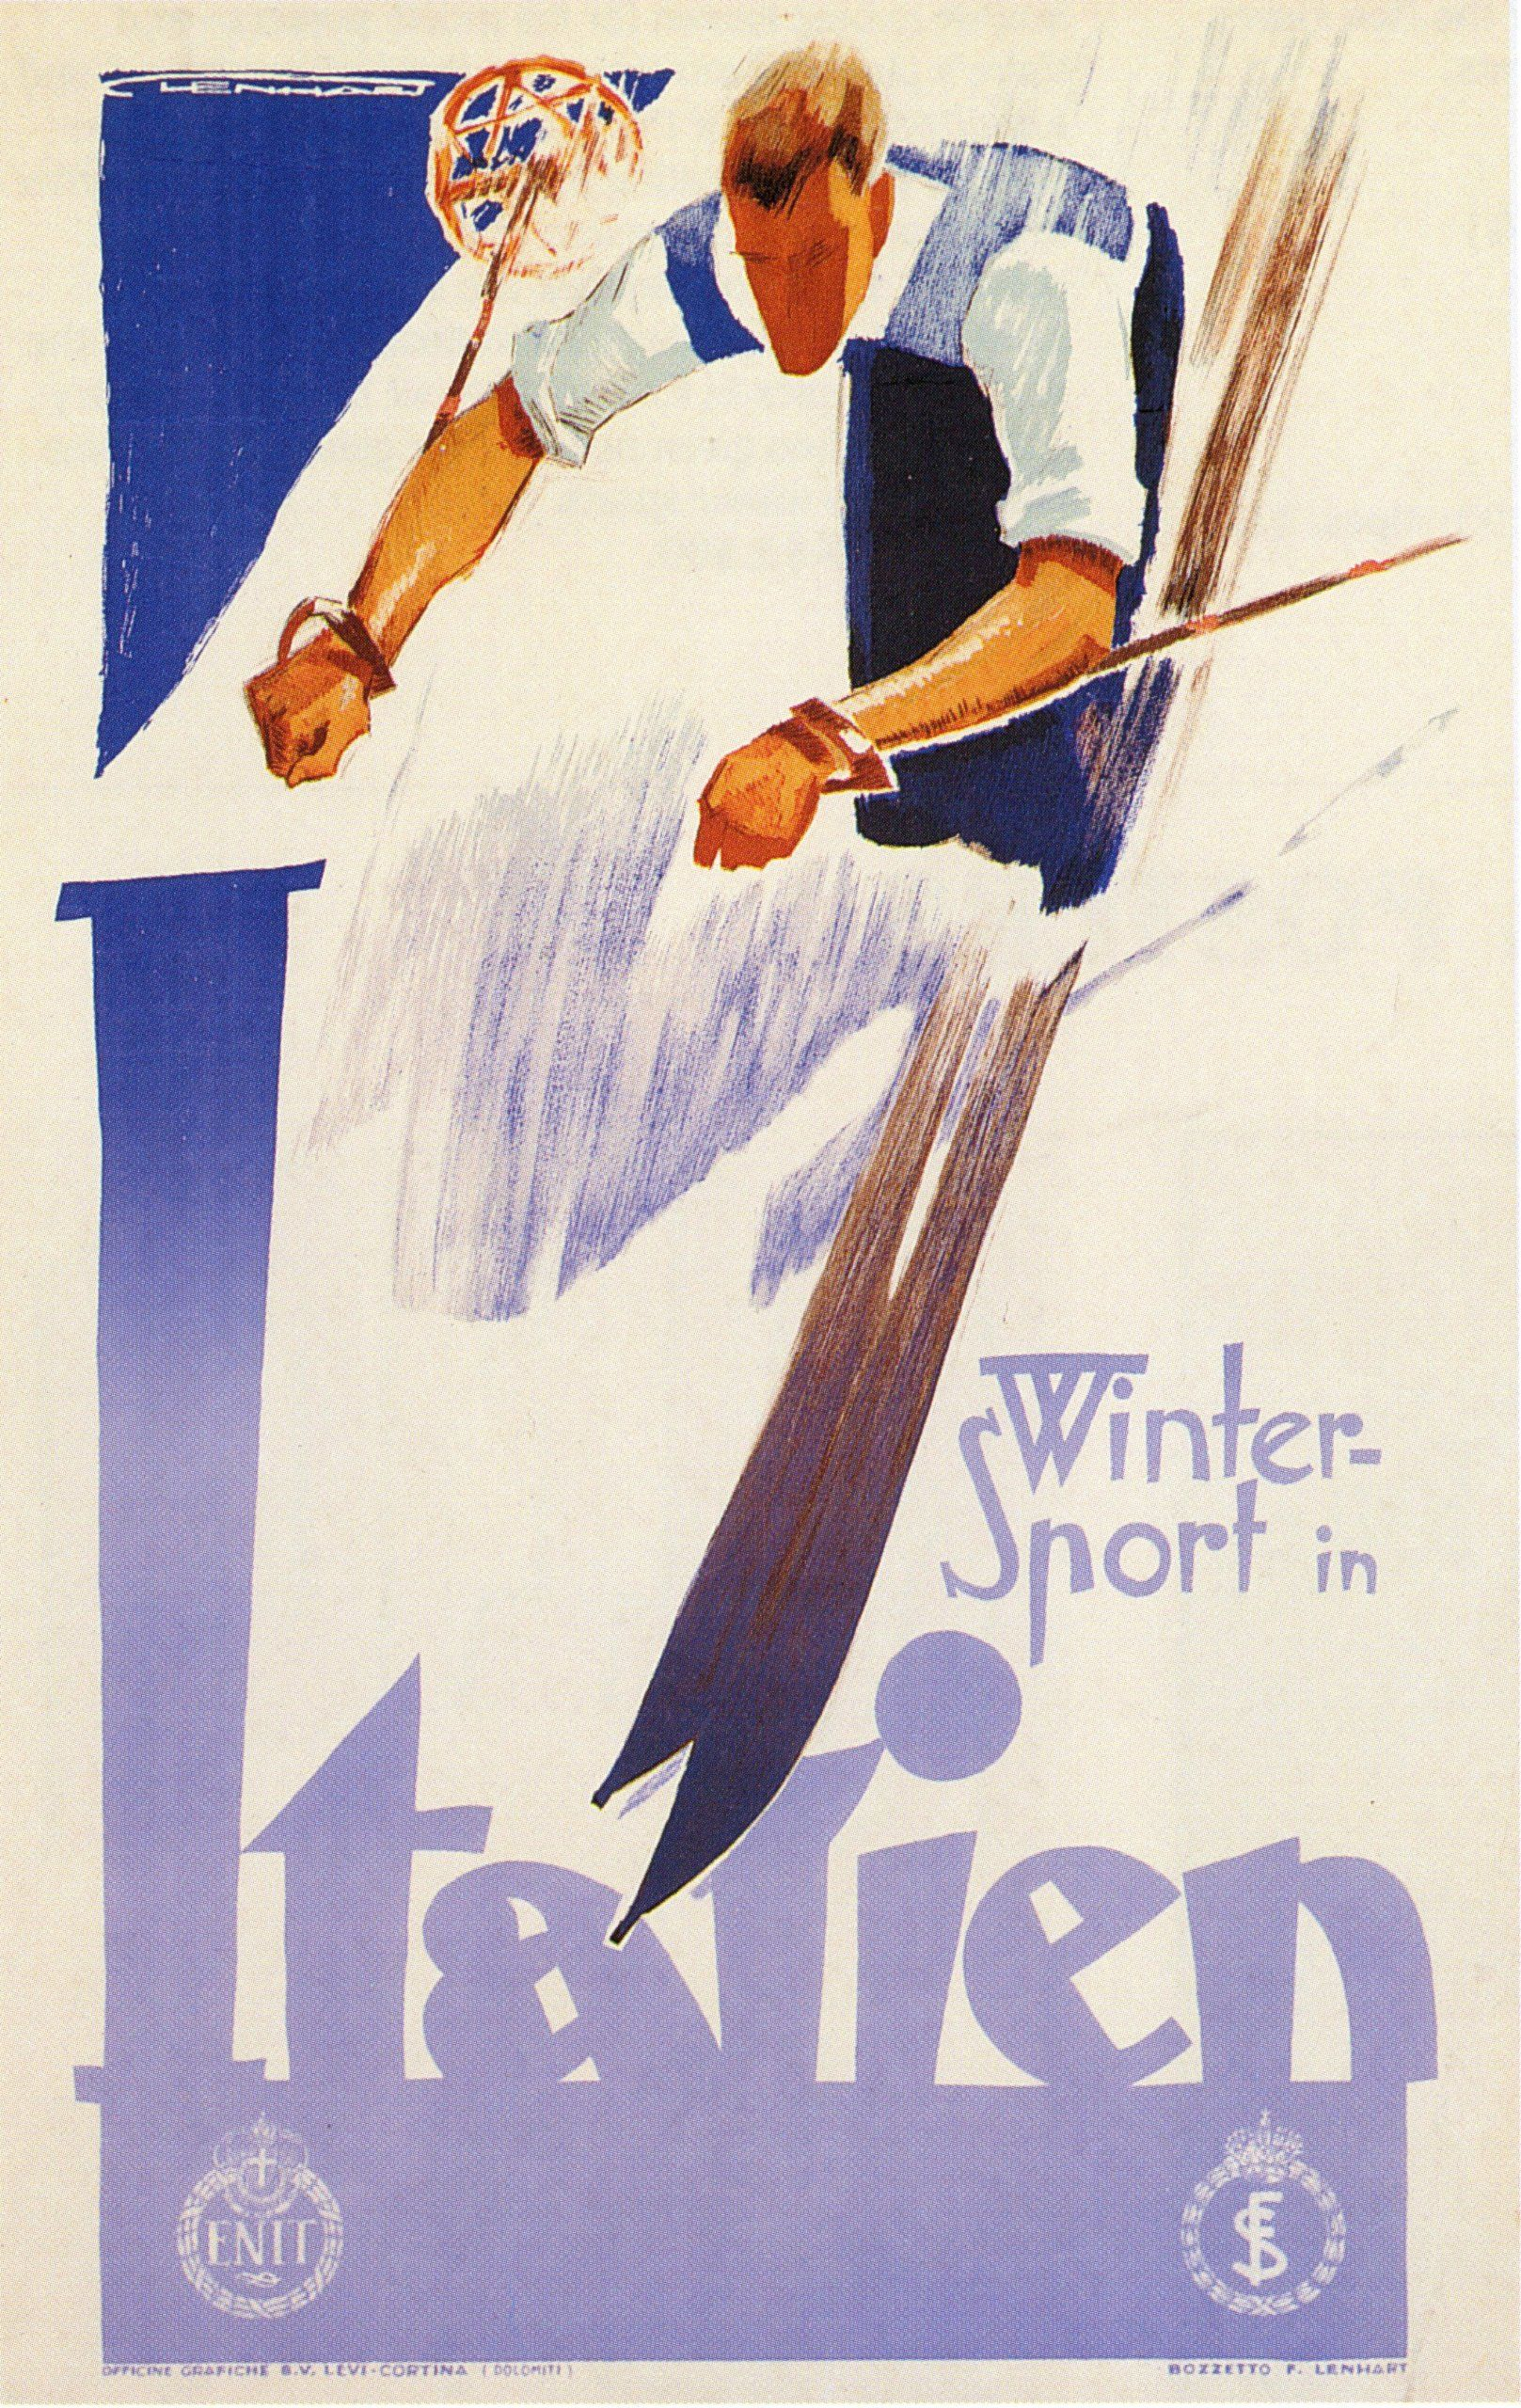 winter sports skiing in italy large vintage travel ski poster